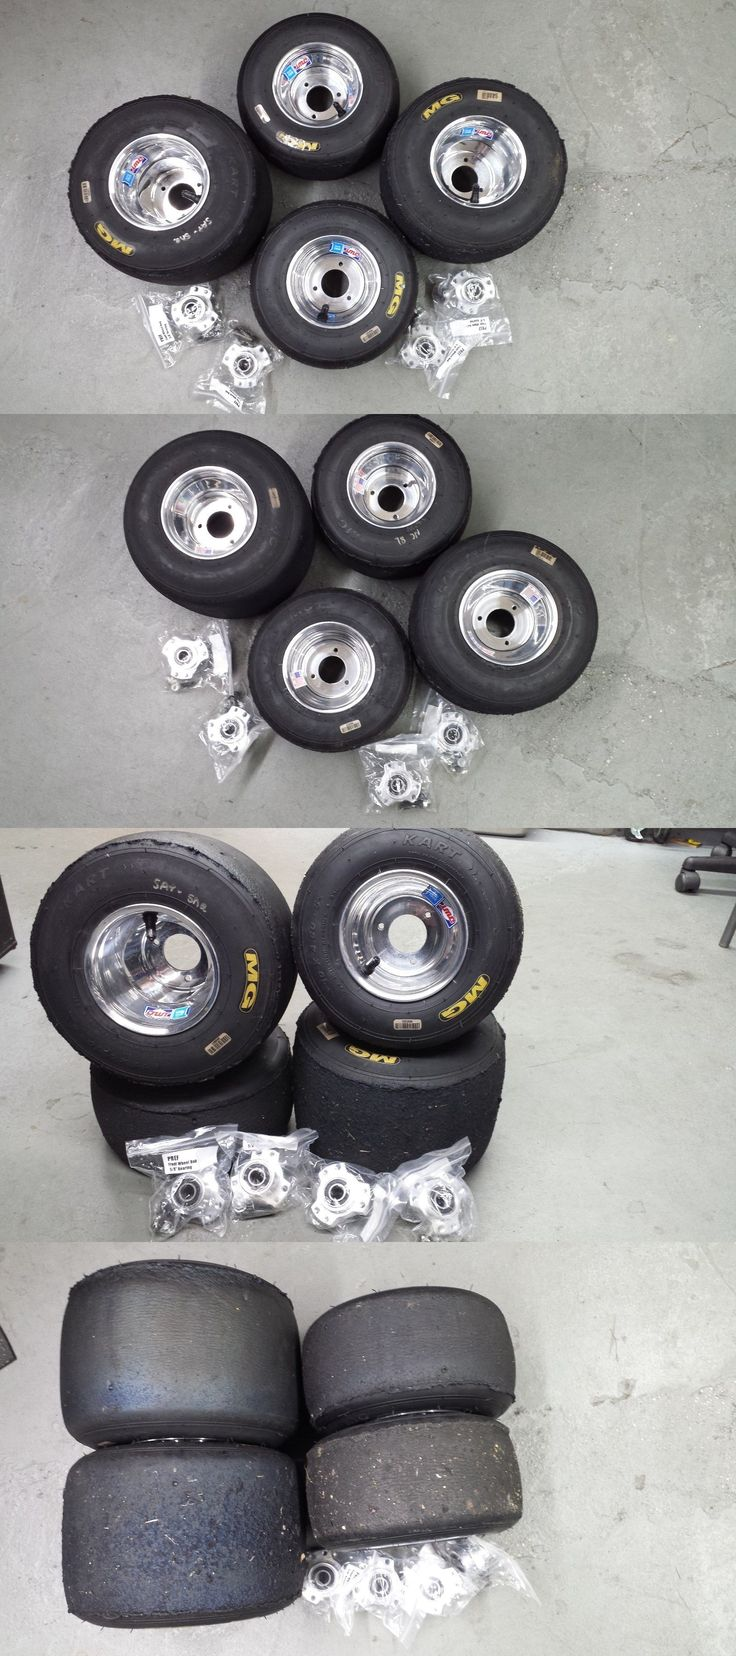 Parts and Accessories 64657: Go Kart Wheels, Go Kart Tires, Radio Flyer Wagon Tires, W/Wheel Hubs, Set Of (4) -> BUY IT NOW ONLY: $229 on eBay!